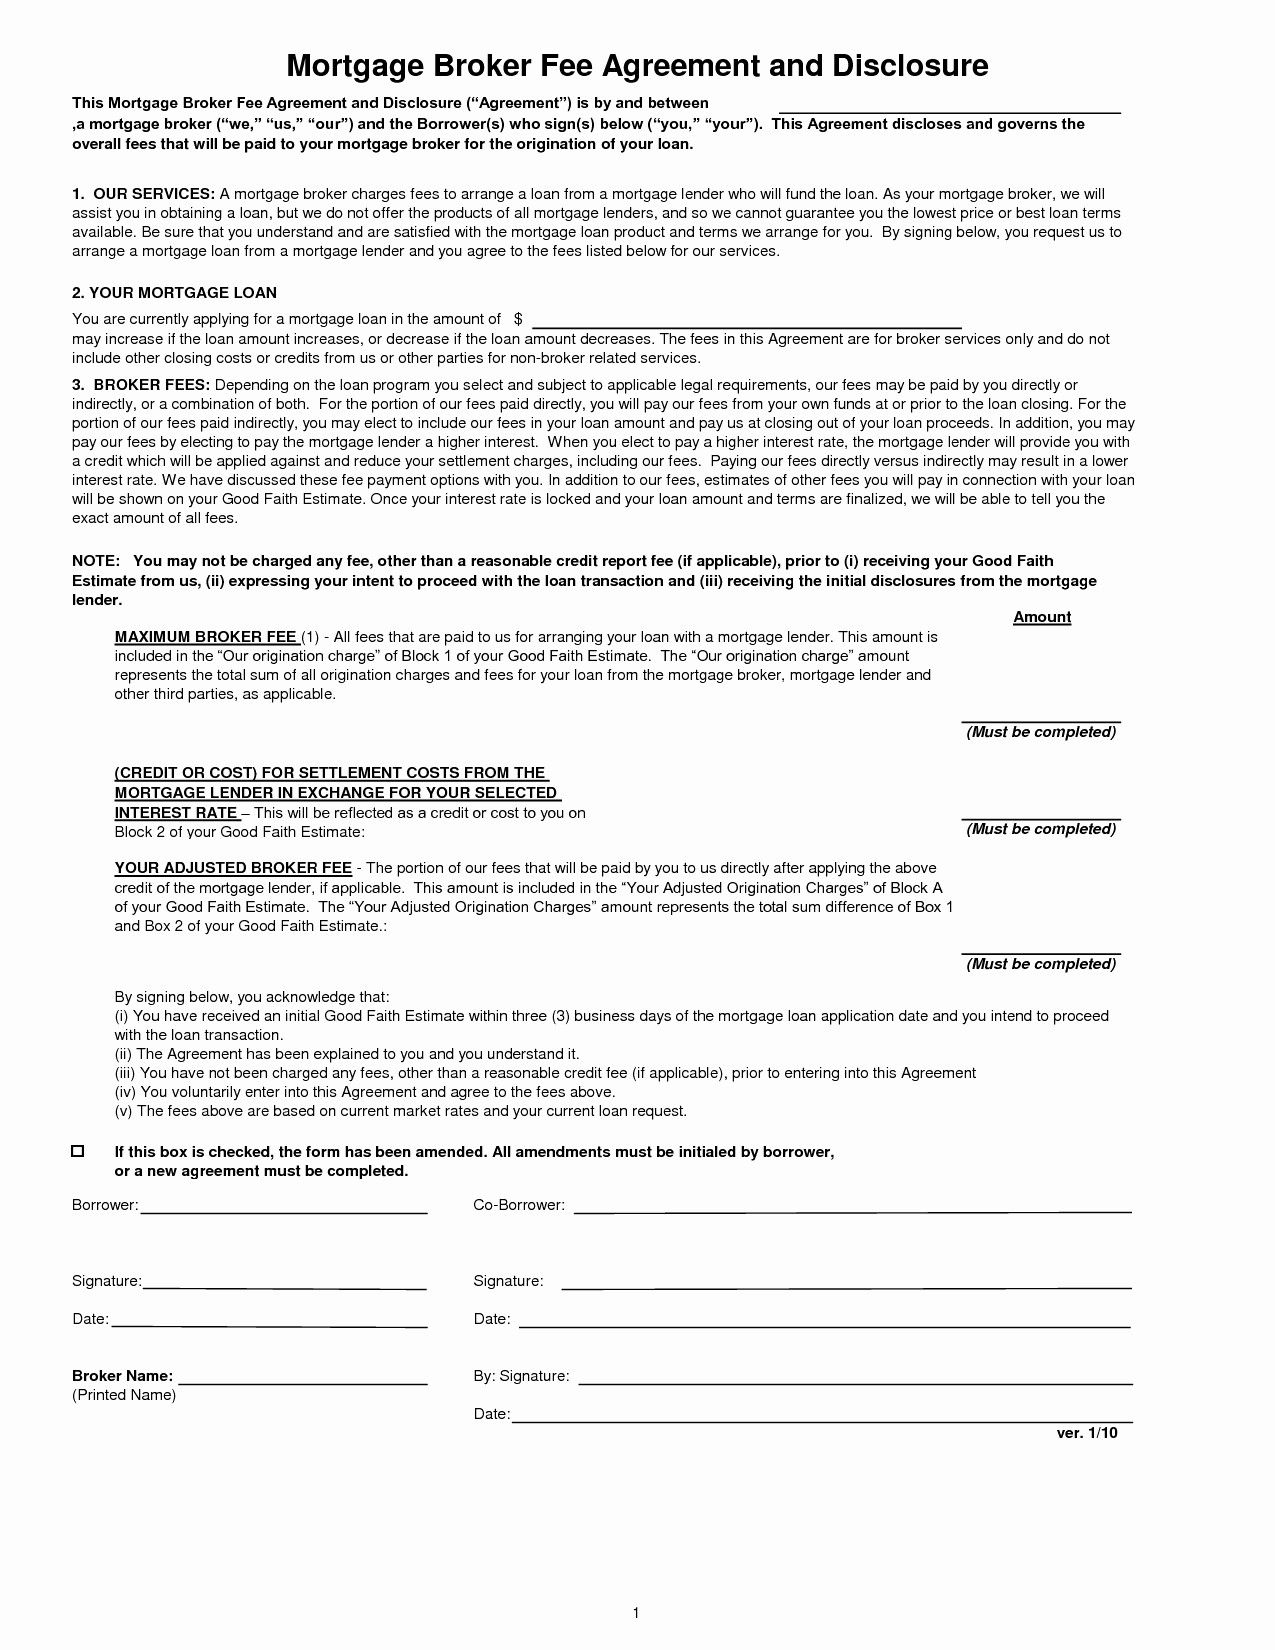 Intra Family Loan Agreement Template Mortgage Agreement Rental Agreement Templates Contract Template